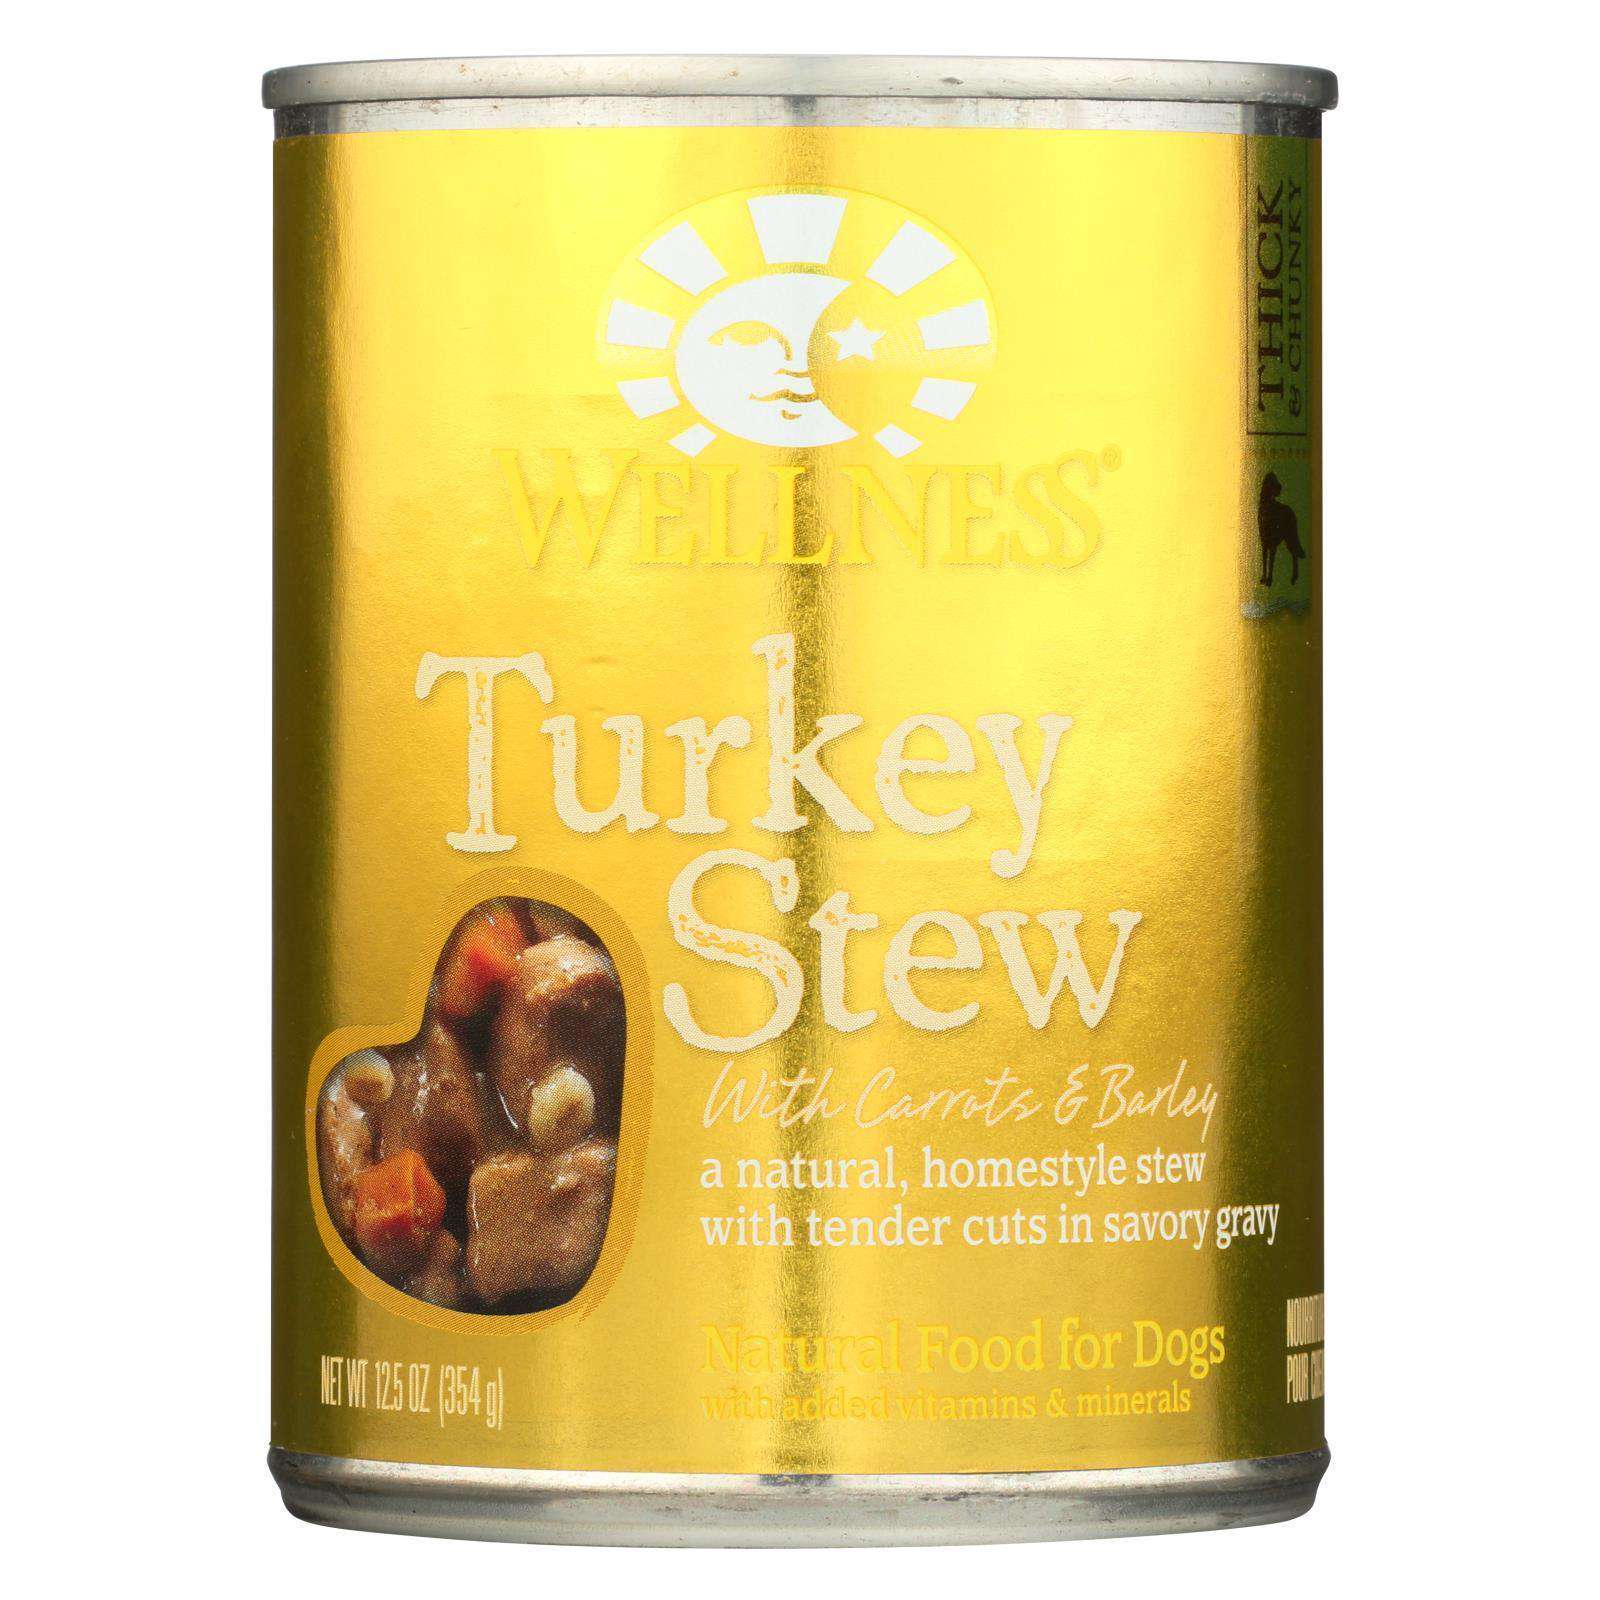 Wellness Pet Products Canned Dog Food - Turkey With Barley And Carrots - Case Of 12 - 12.5 Oz.-Wellness Pet Products-DirtyFurClothing